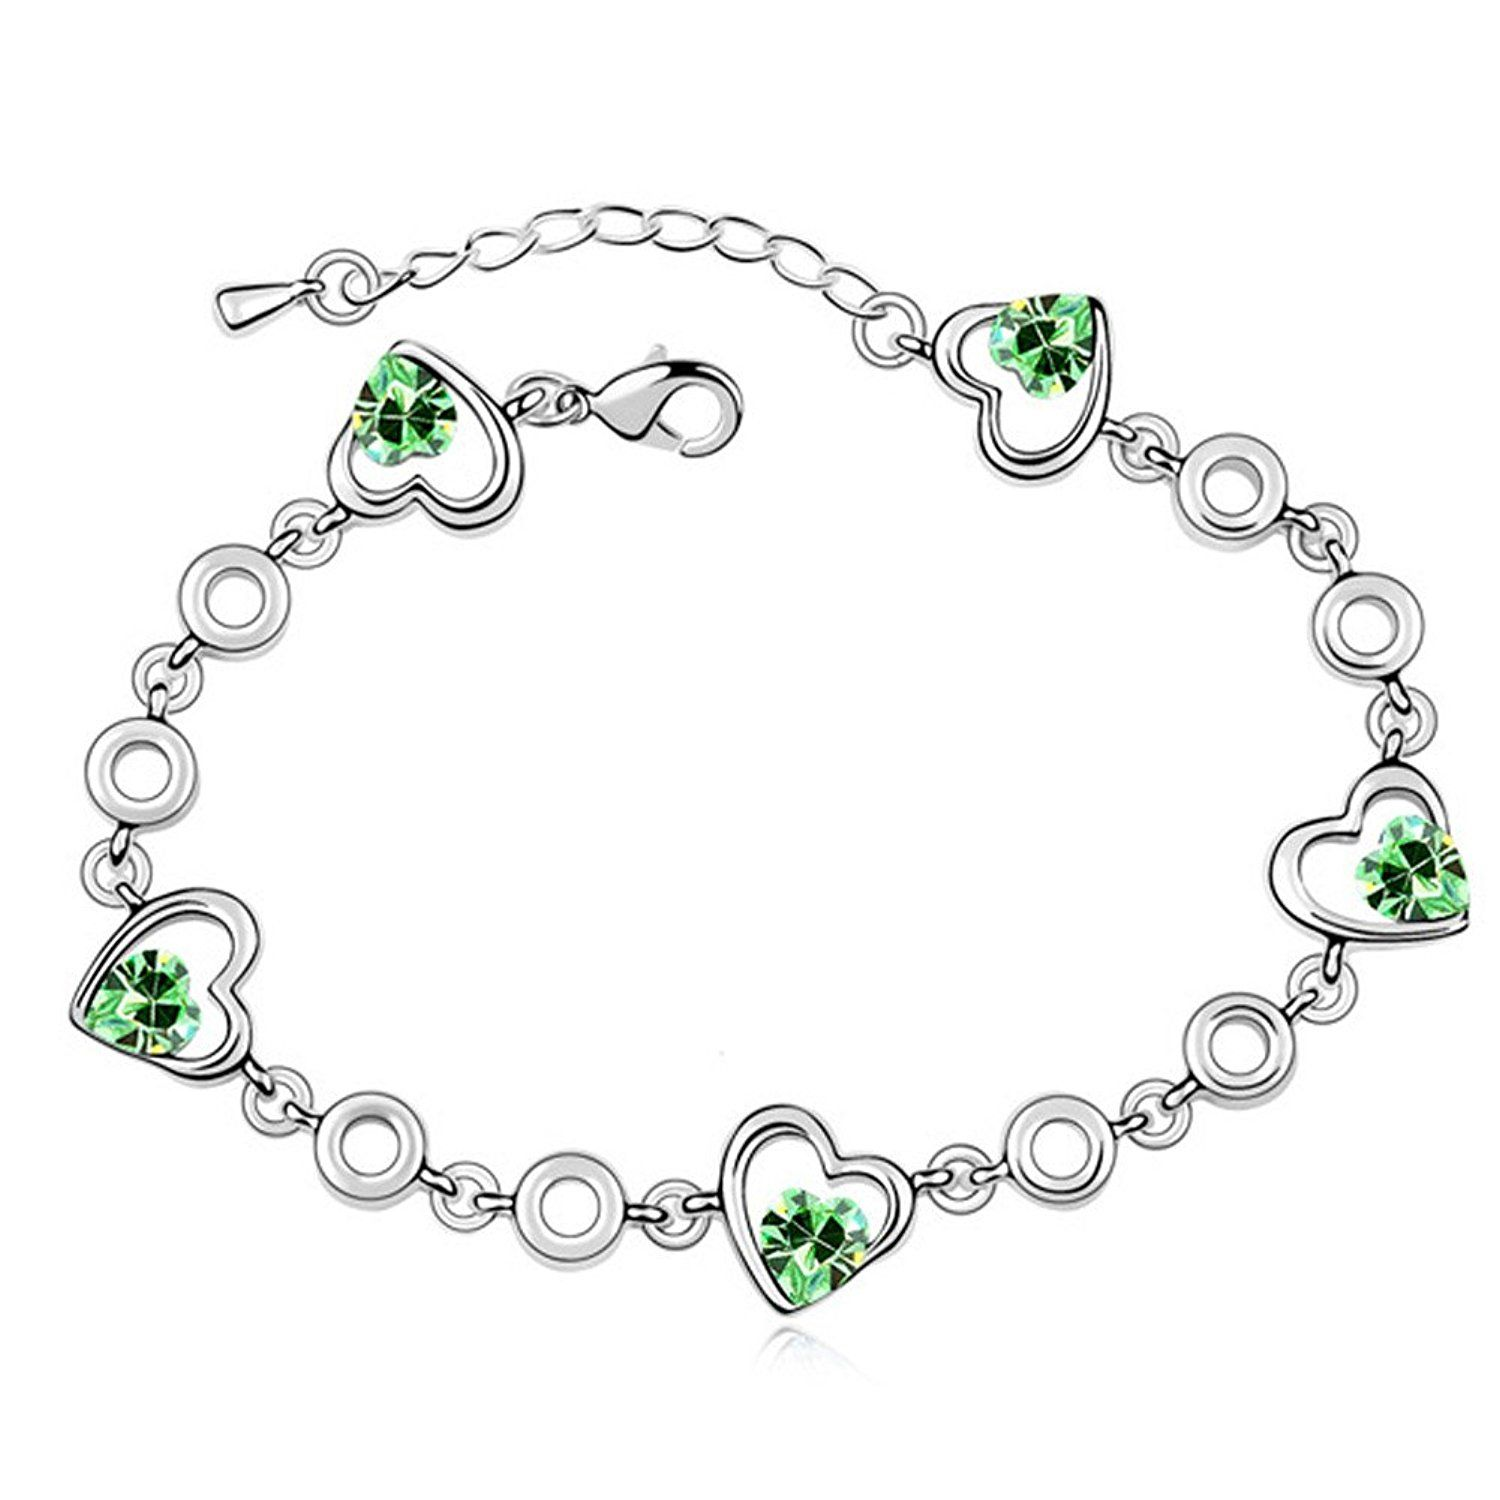 Latigerf double heart bracelet white gold plated swarovski elements